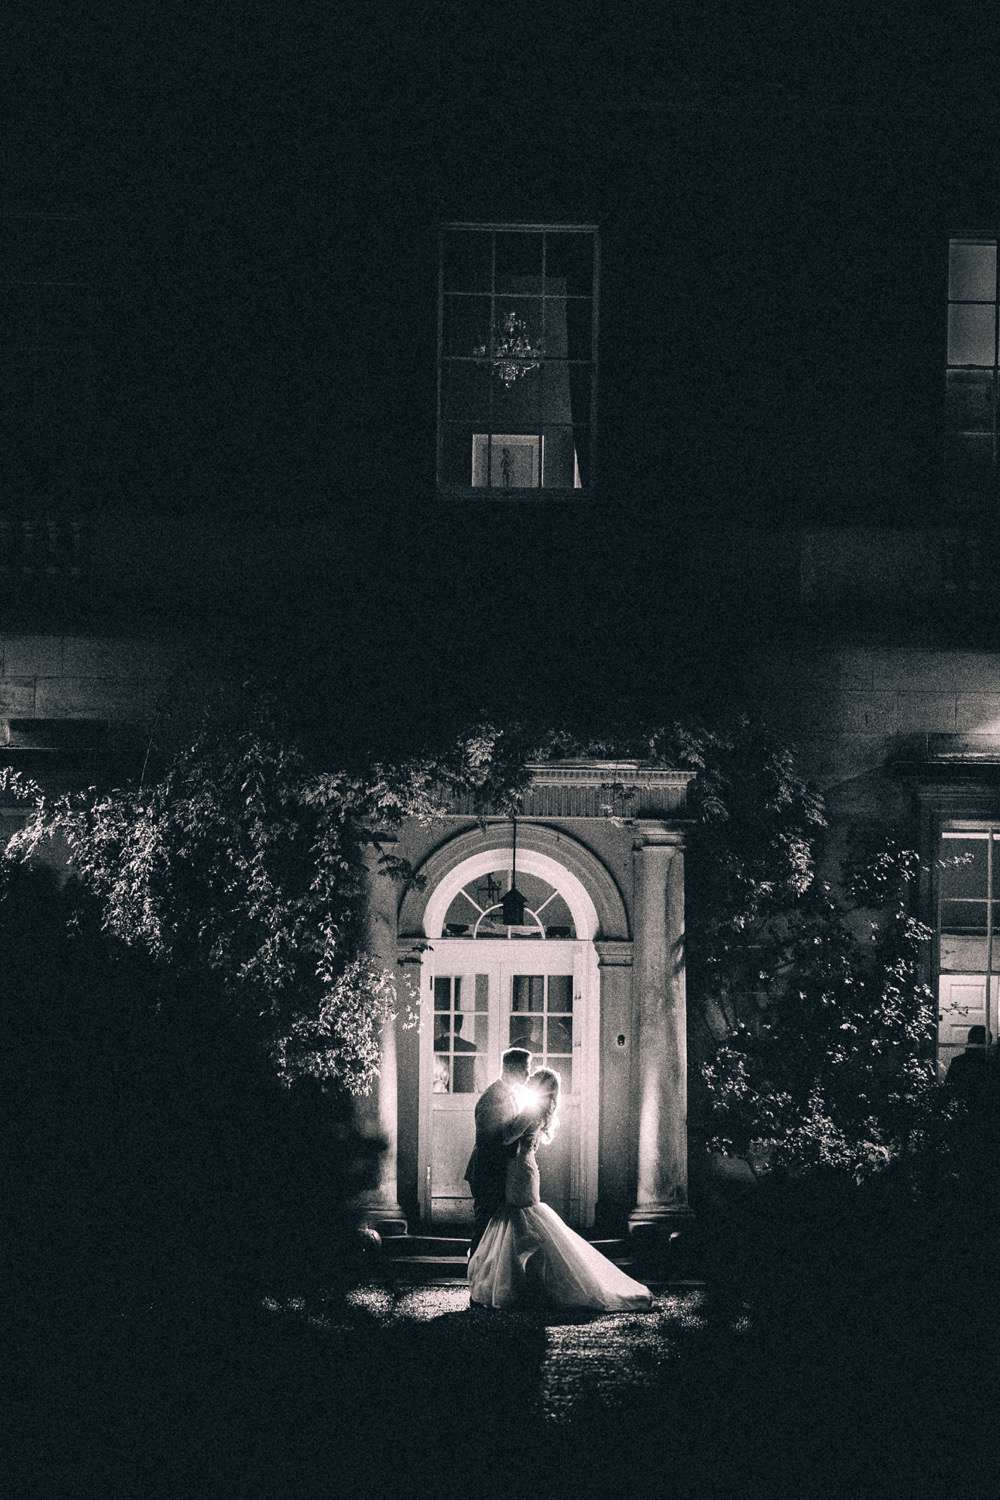 darlington-wedding-photographer-wedding-photography-darlington-126.jpg